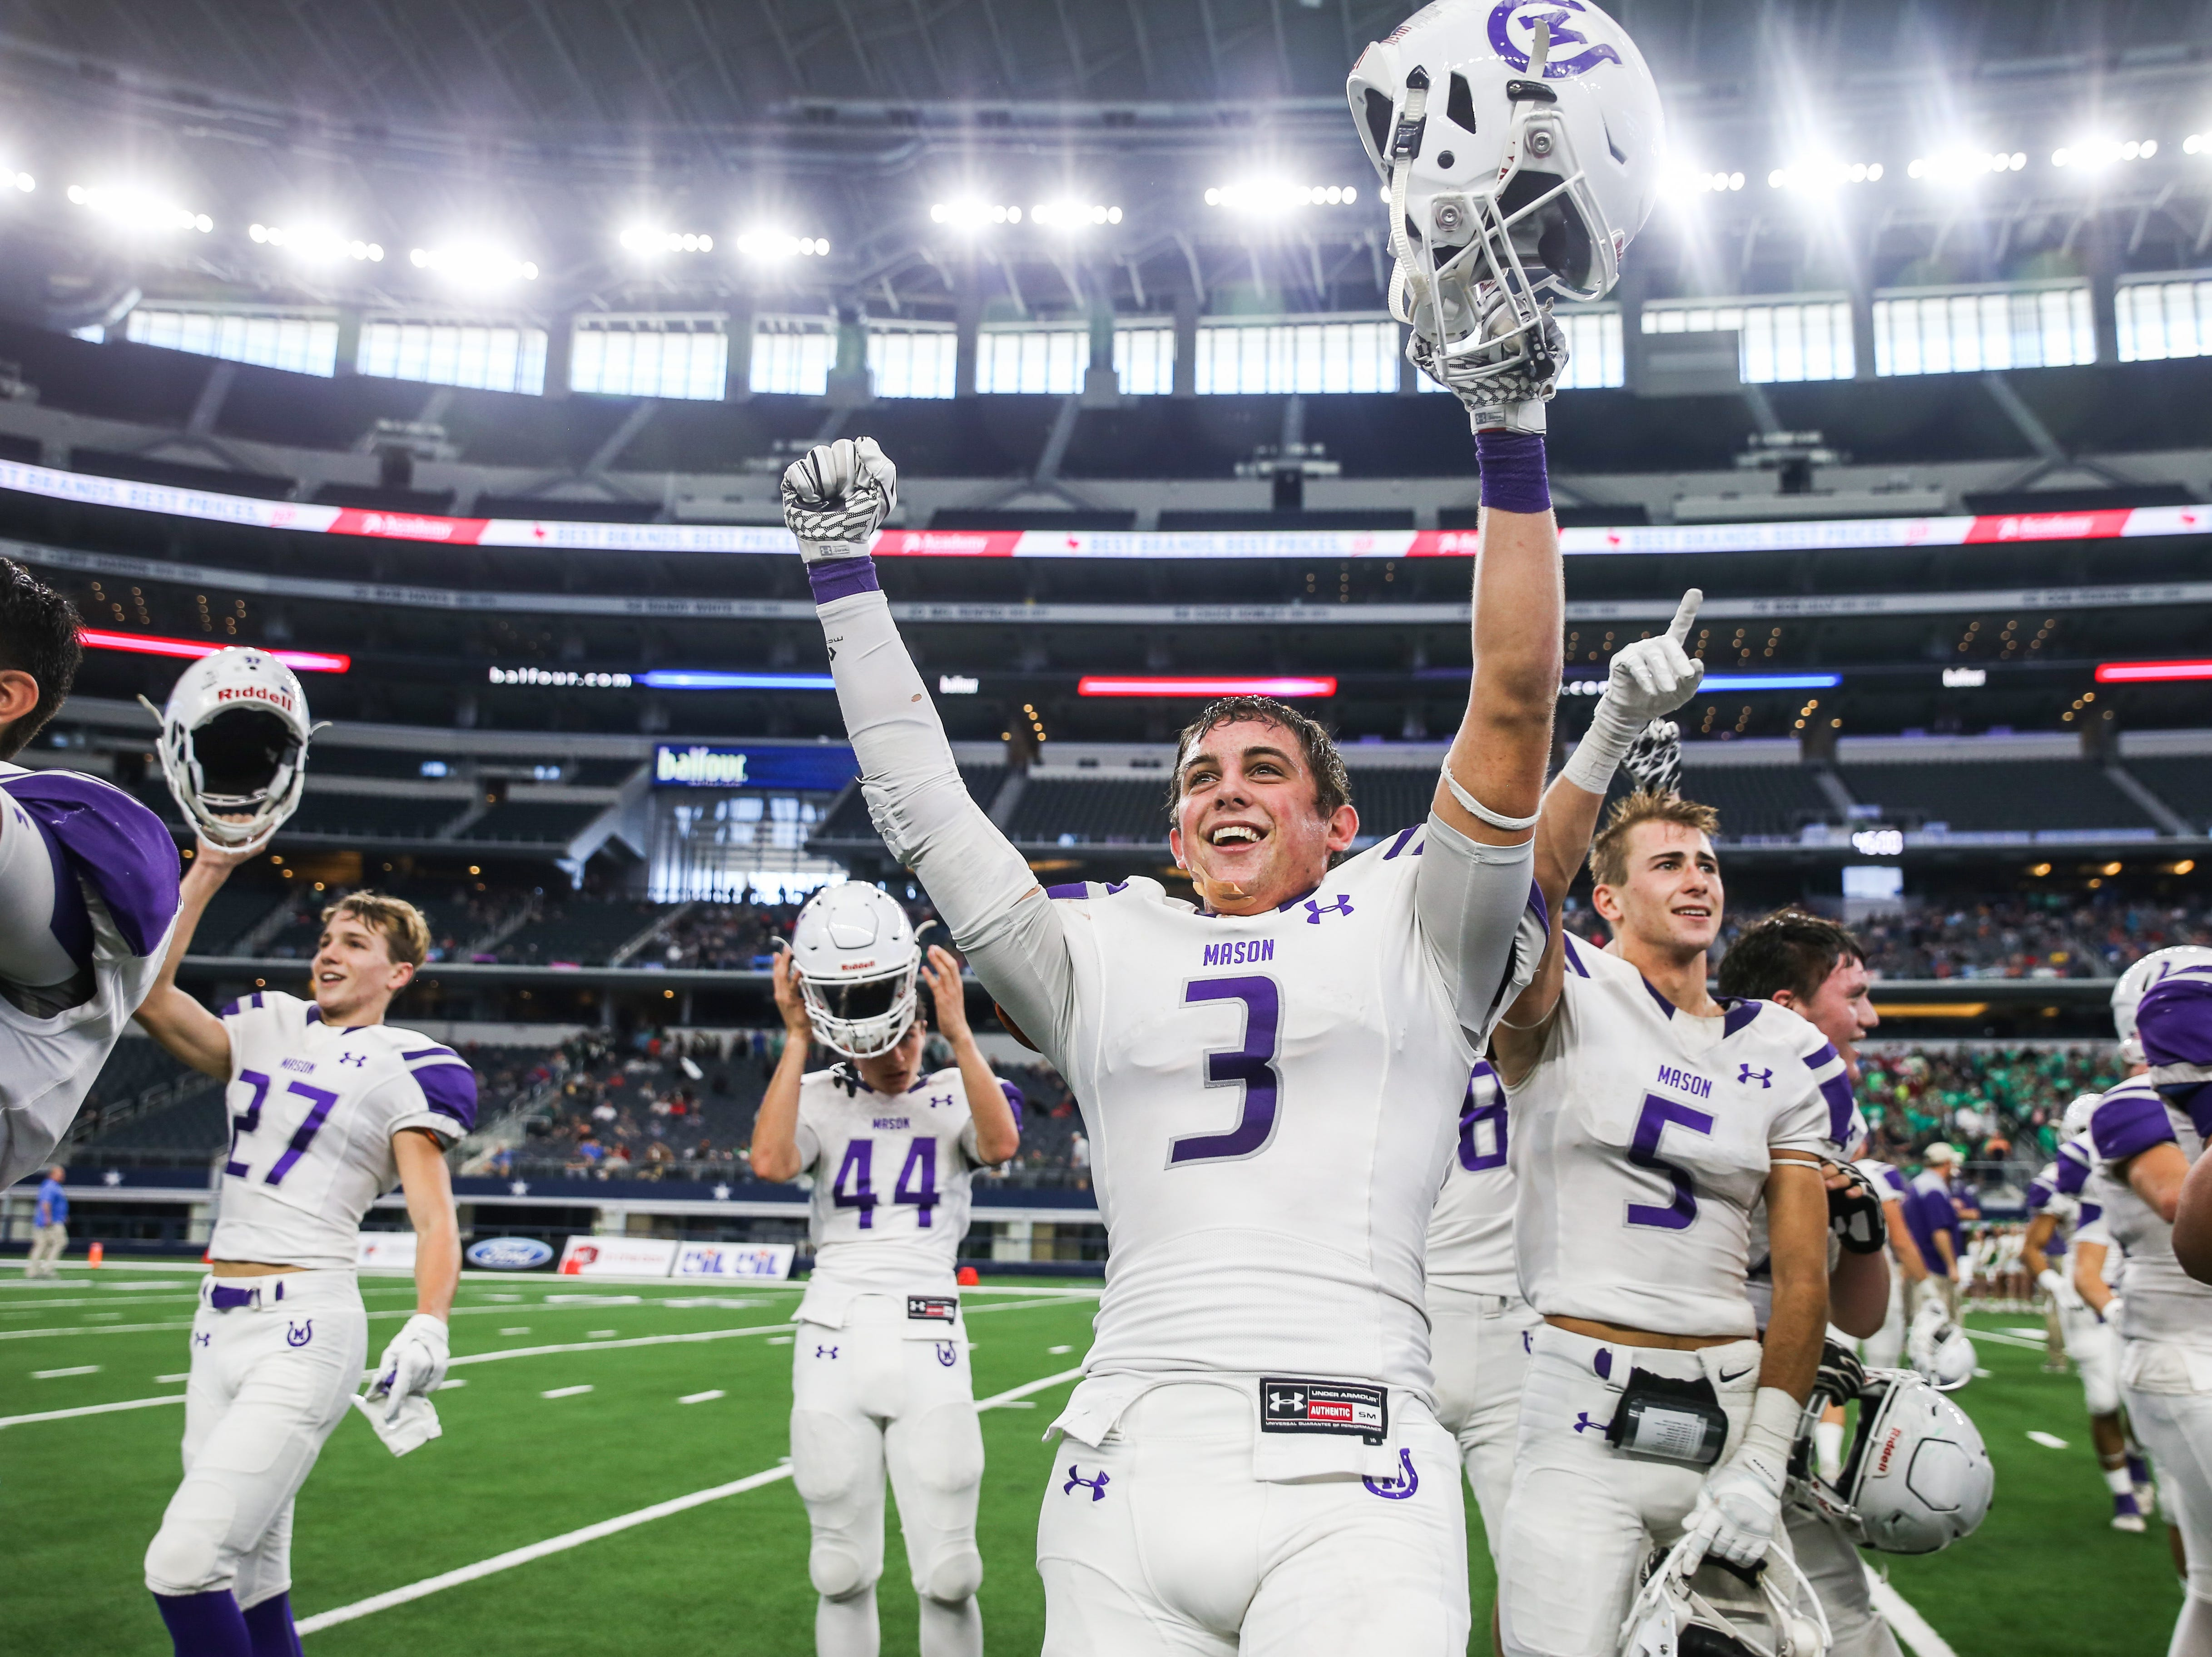 Mason players cheer as they win the state finals game against New Deal Thursday, Dec. 20, at the AT&T Stadium.